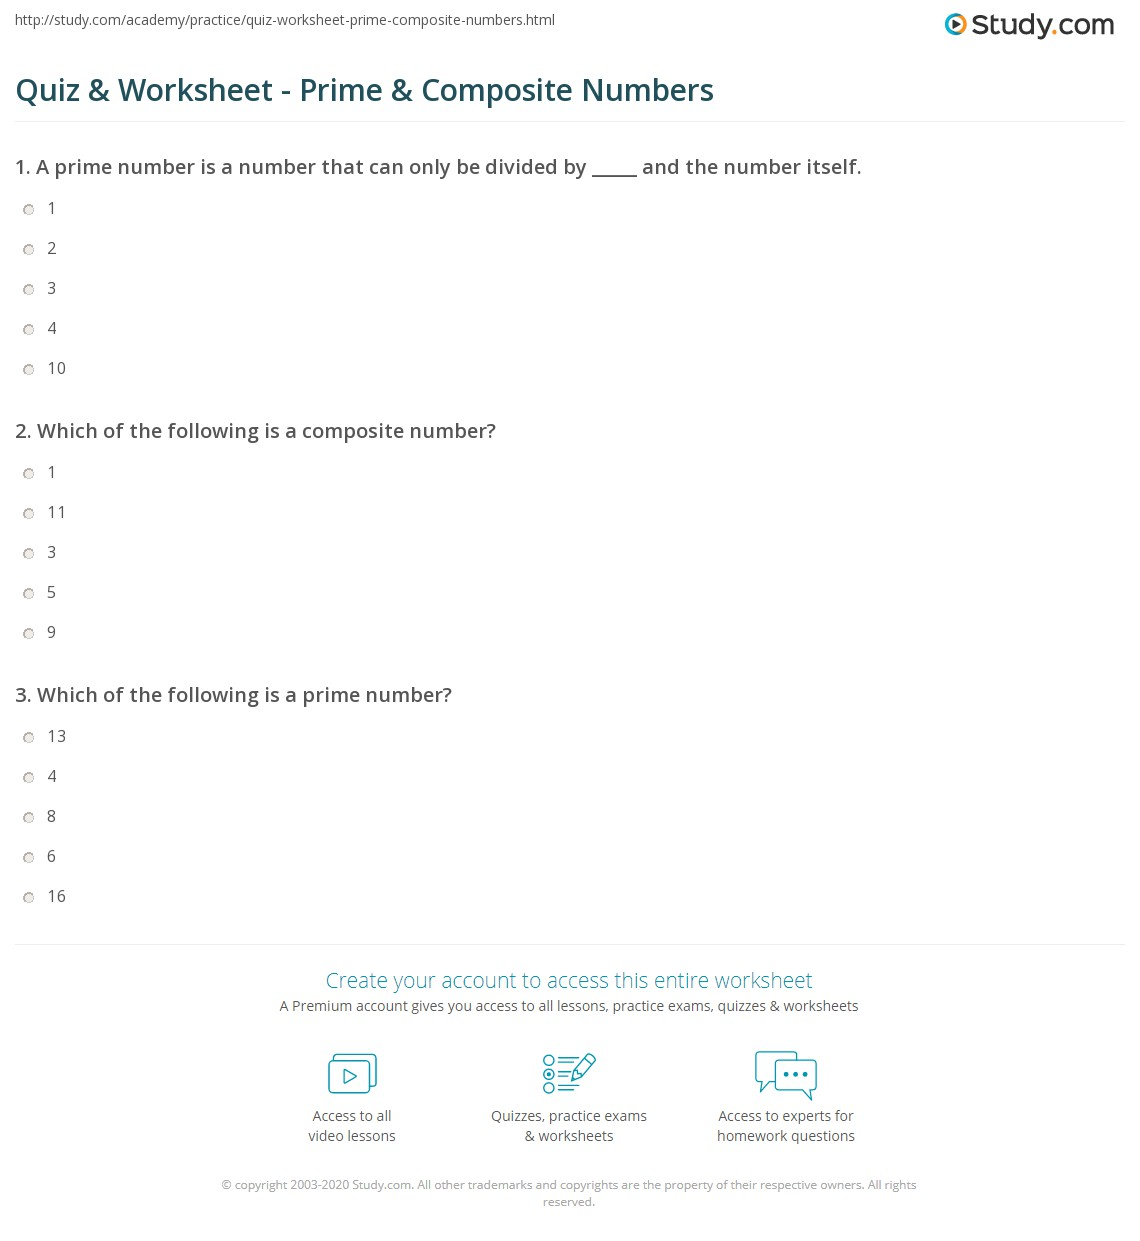 Worksheets Prime And Composite Numbers Worksheet quiz worksheet prime composite numbers study com print identifying worksheet